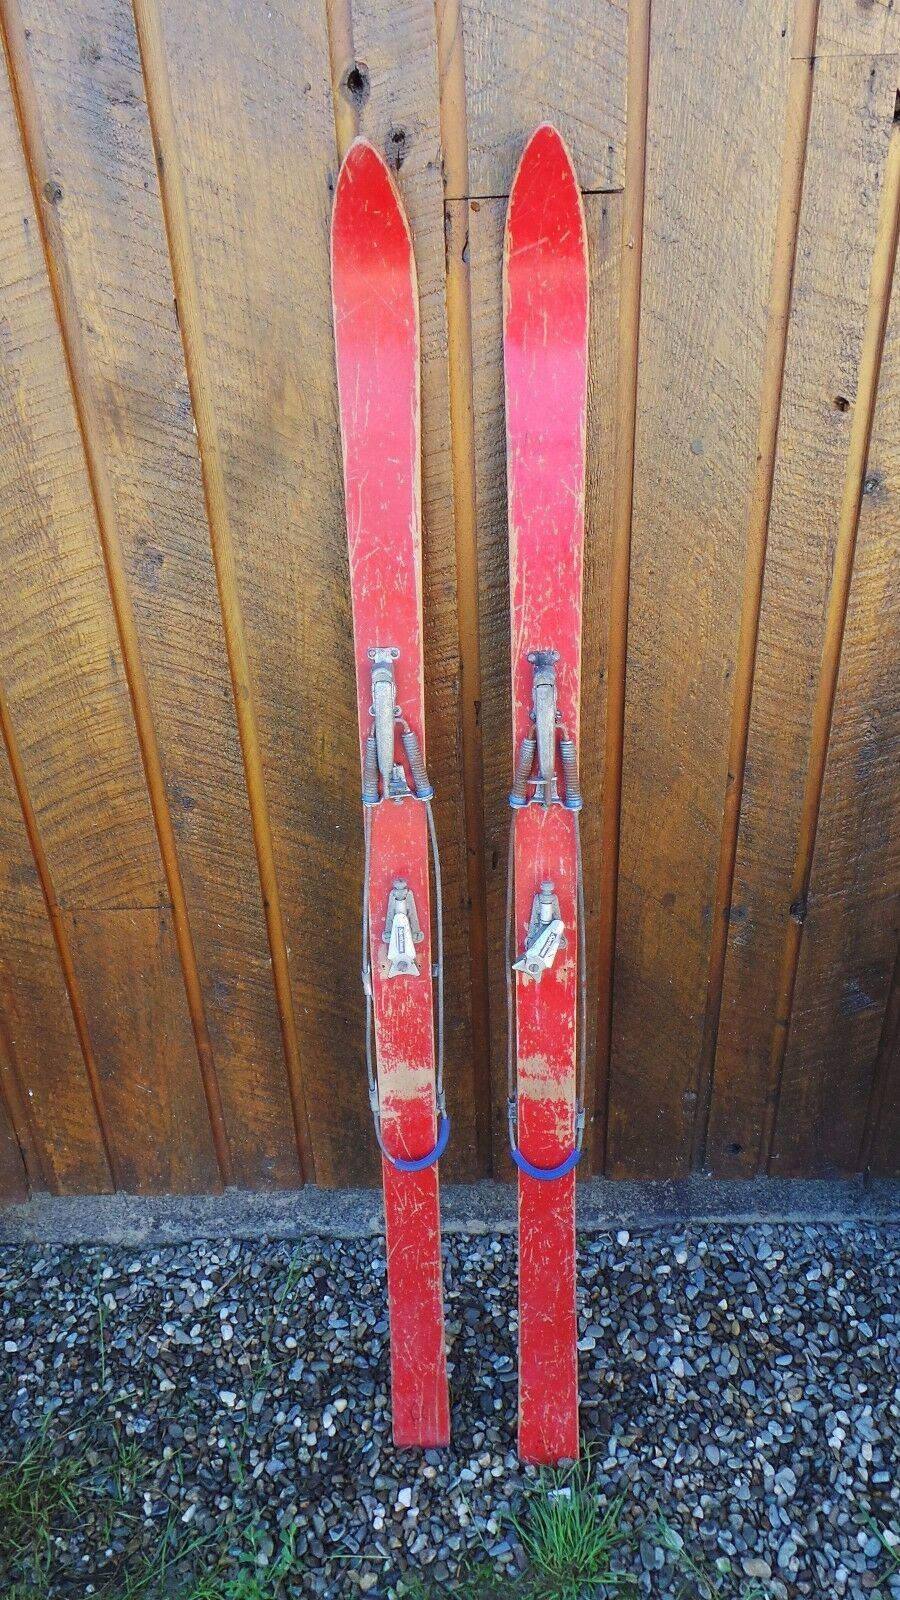 GREAT OLD Wooden Skis 59  Long With Has RED Finish Great for Decorating